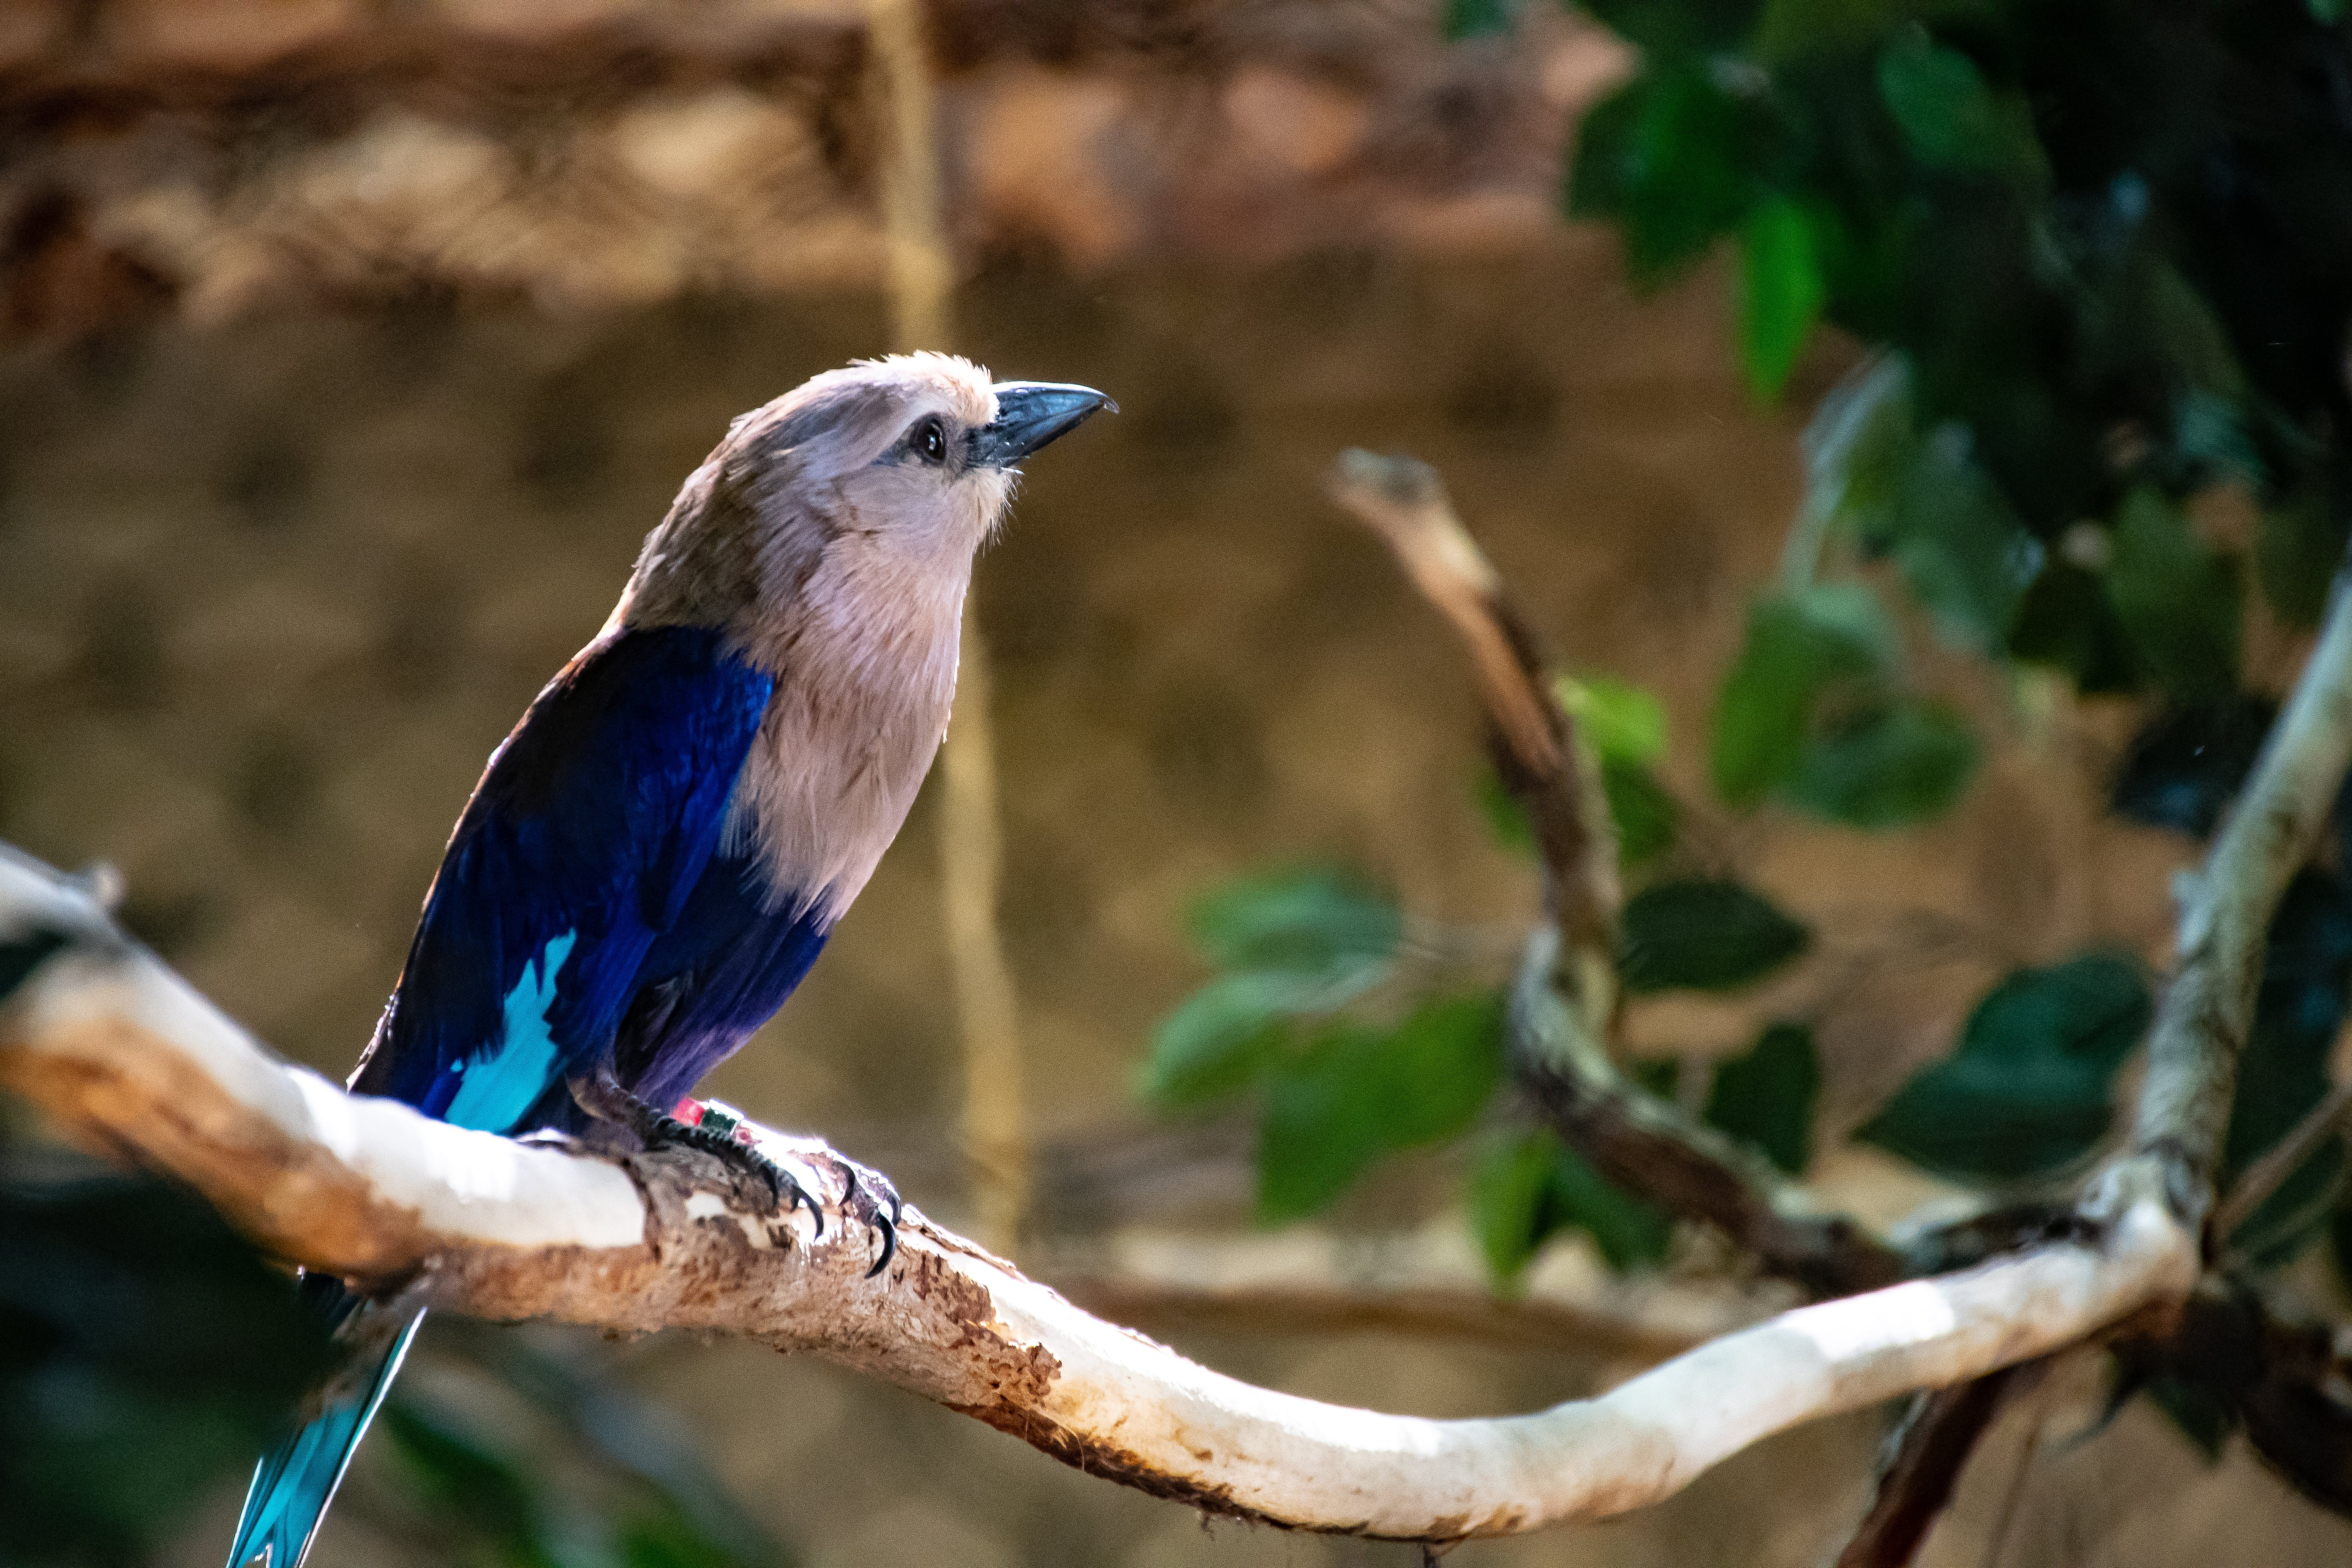 Blue and White Bird Perched on Brown Tree Twig